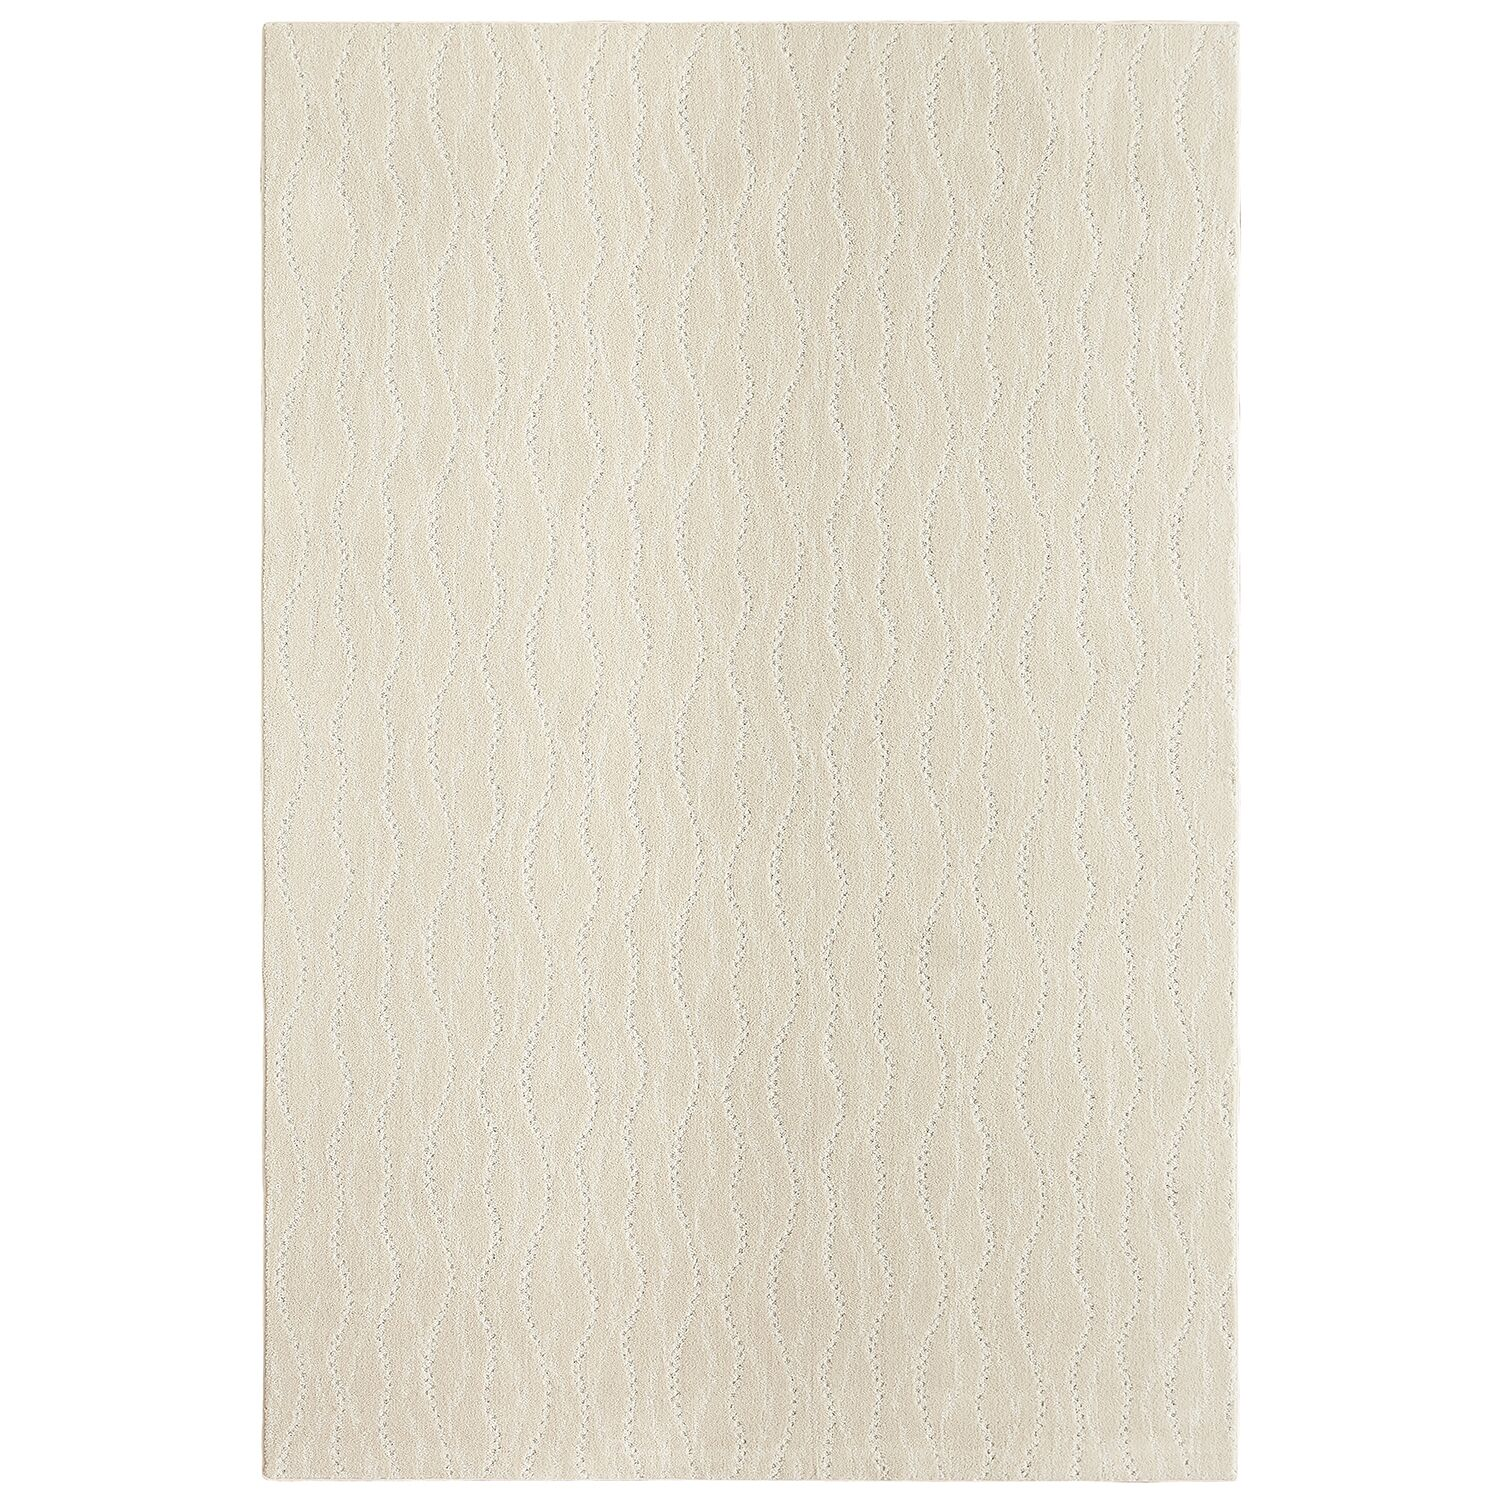 Bettie Hand-Tufted Neutral Area Rug Rug Size: Rectangle 9' x 12'